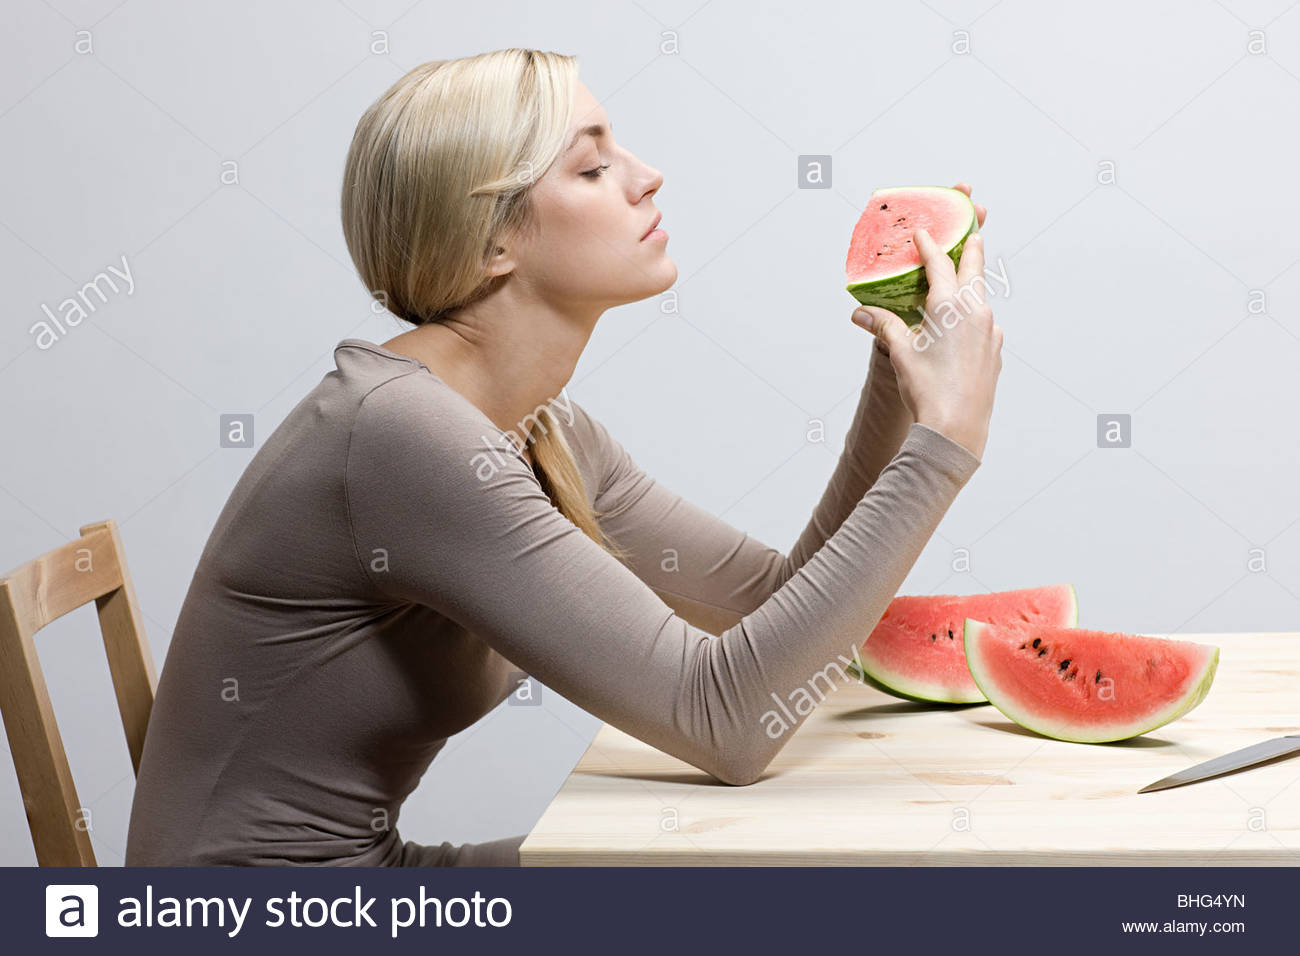 Woman with watermelon slices - Stock Image